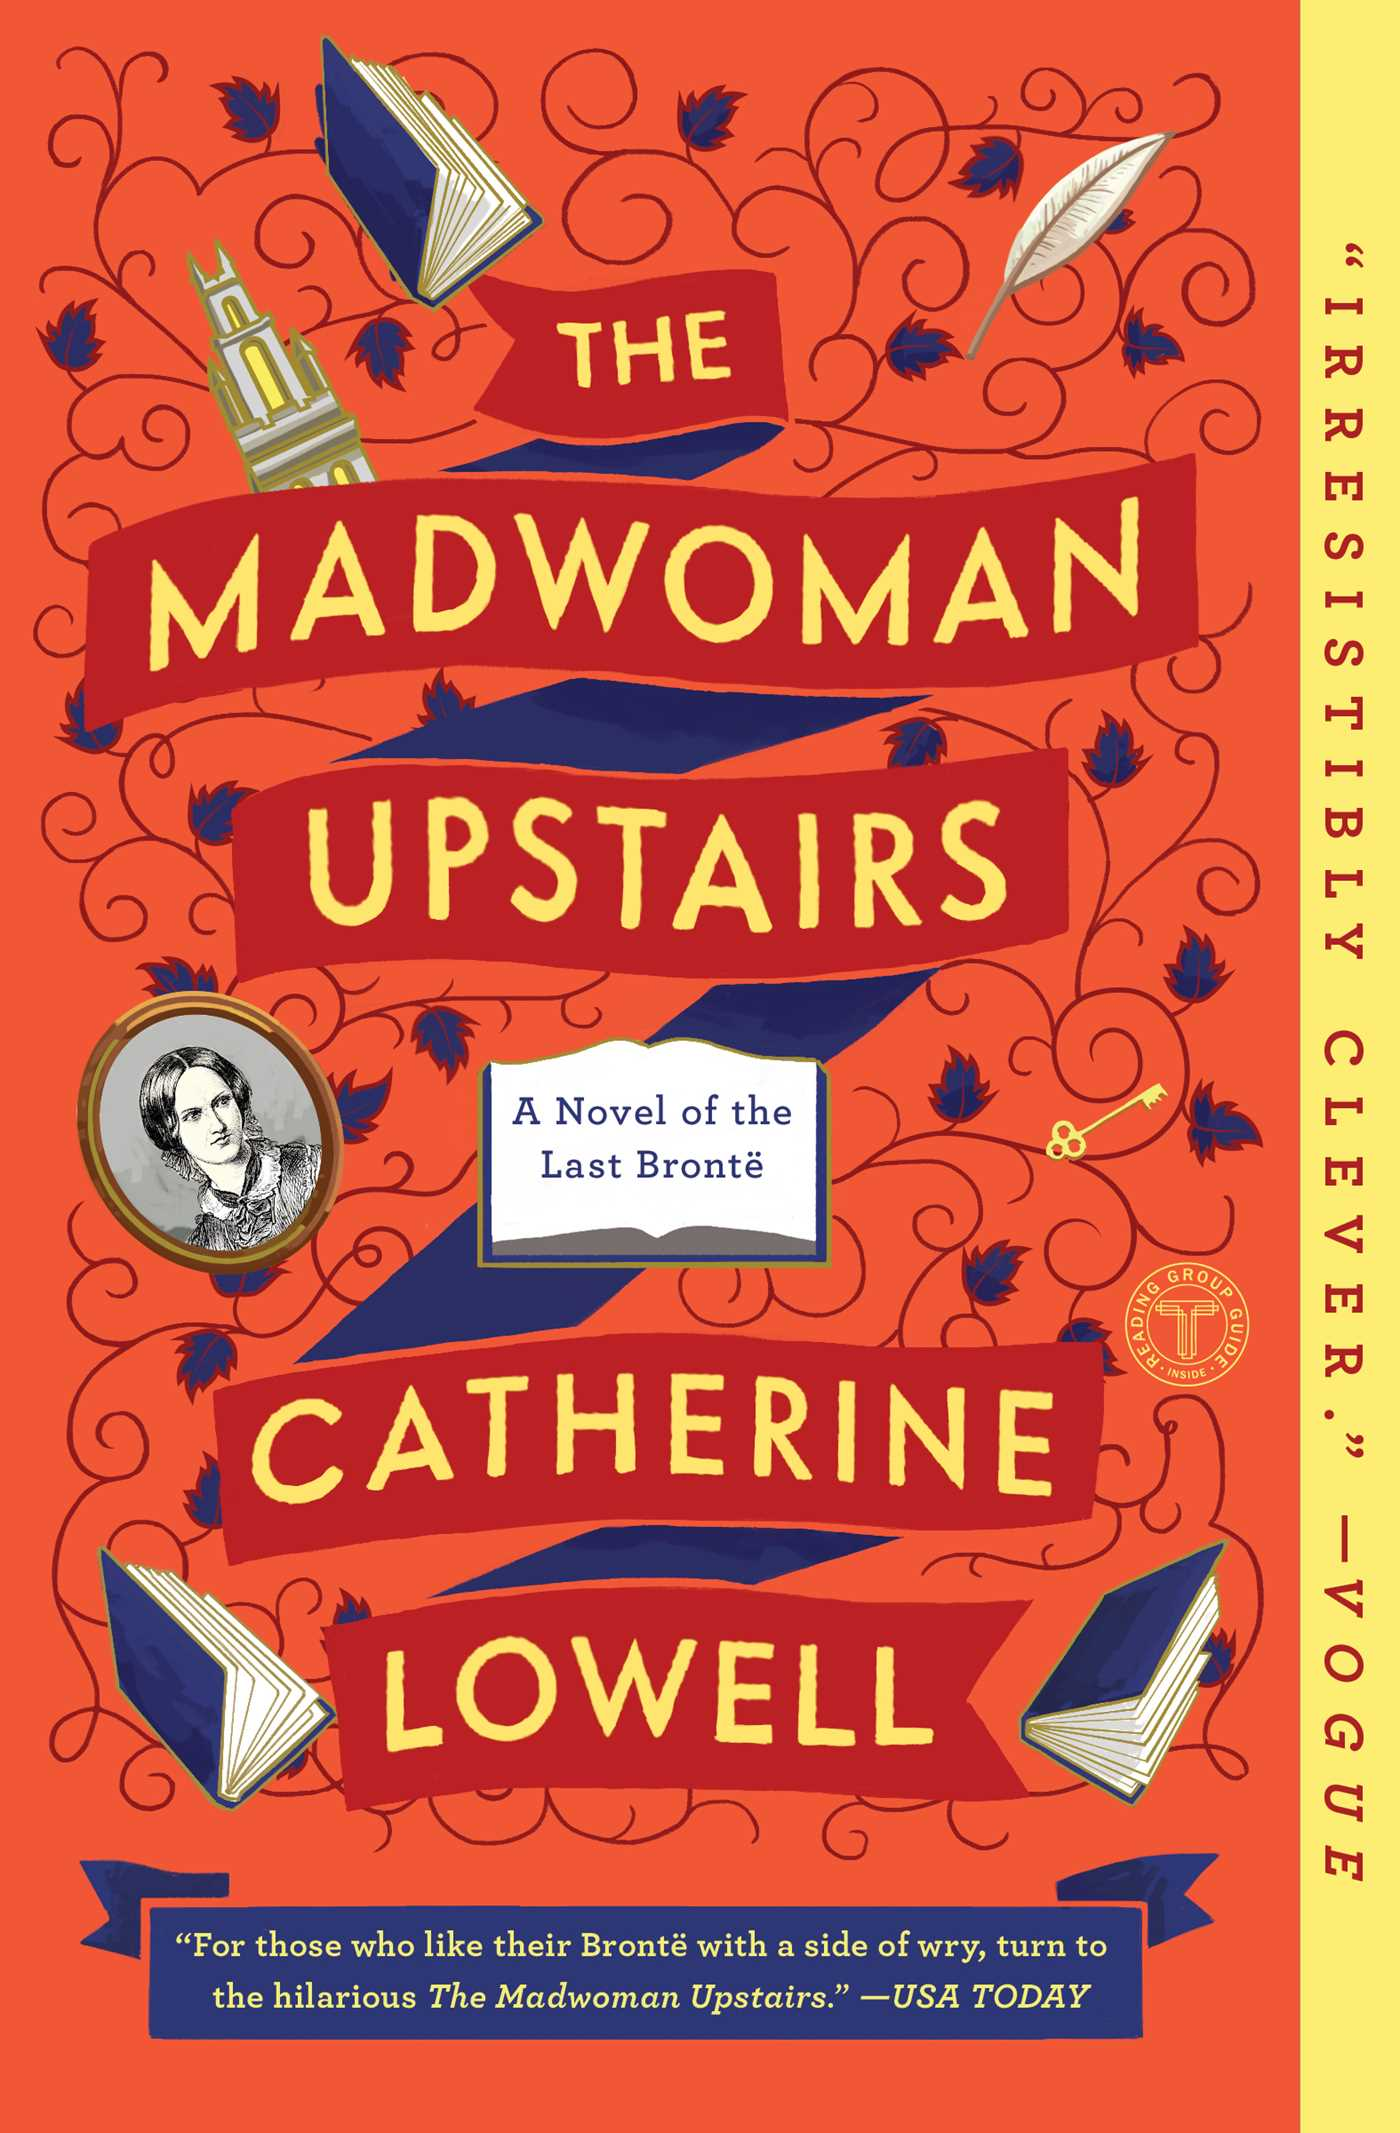 Book Cover Image (jpg): The Madwoman Upstairs